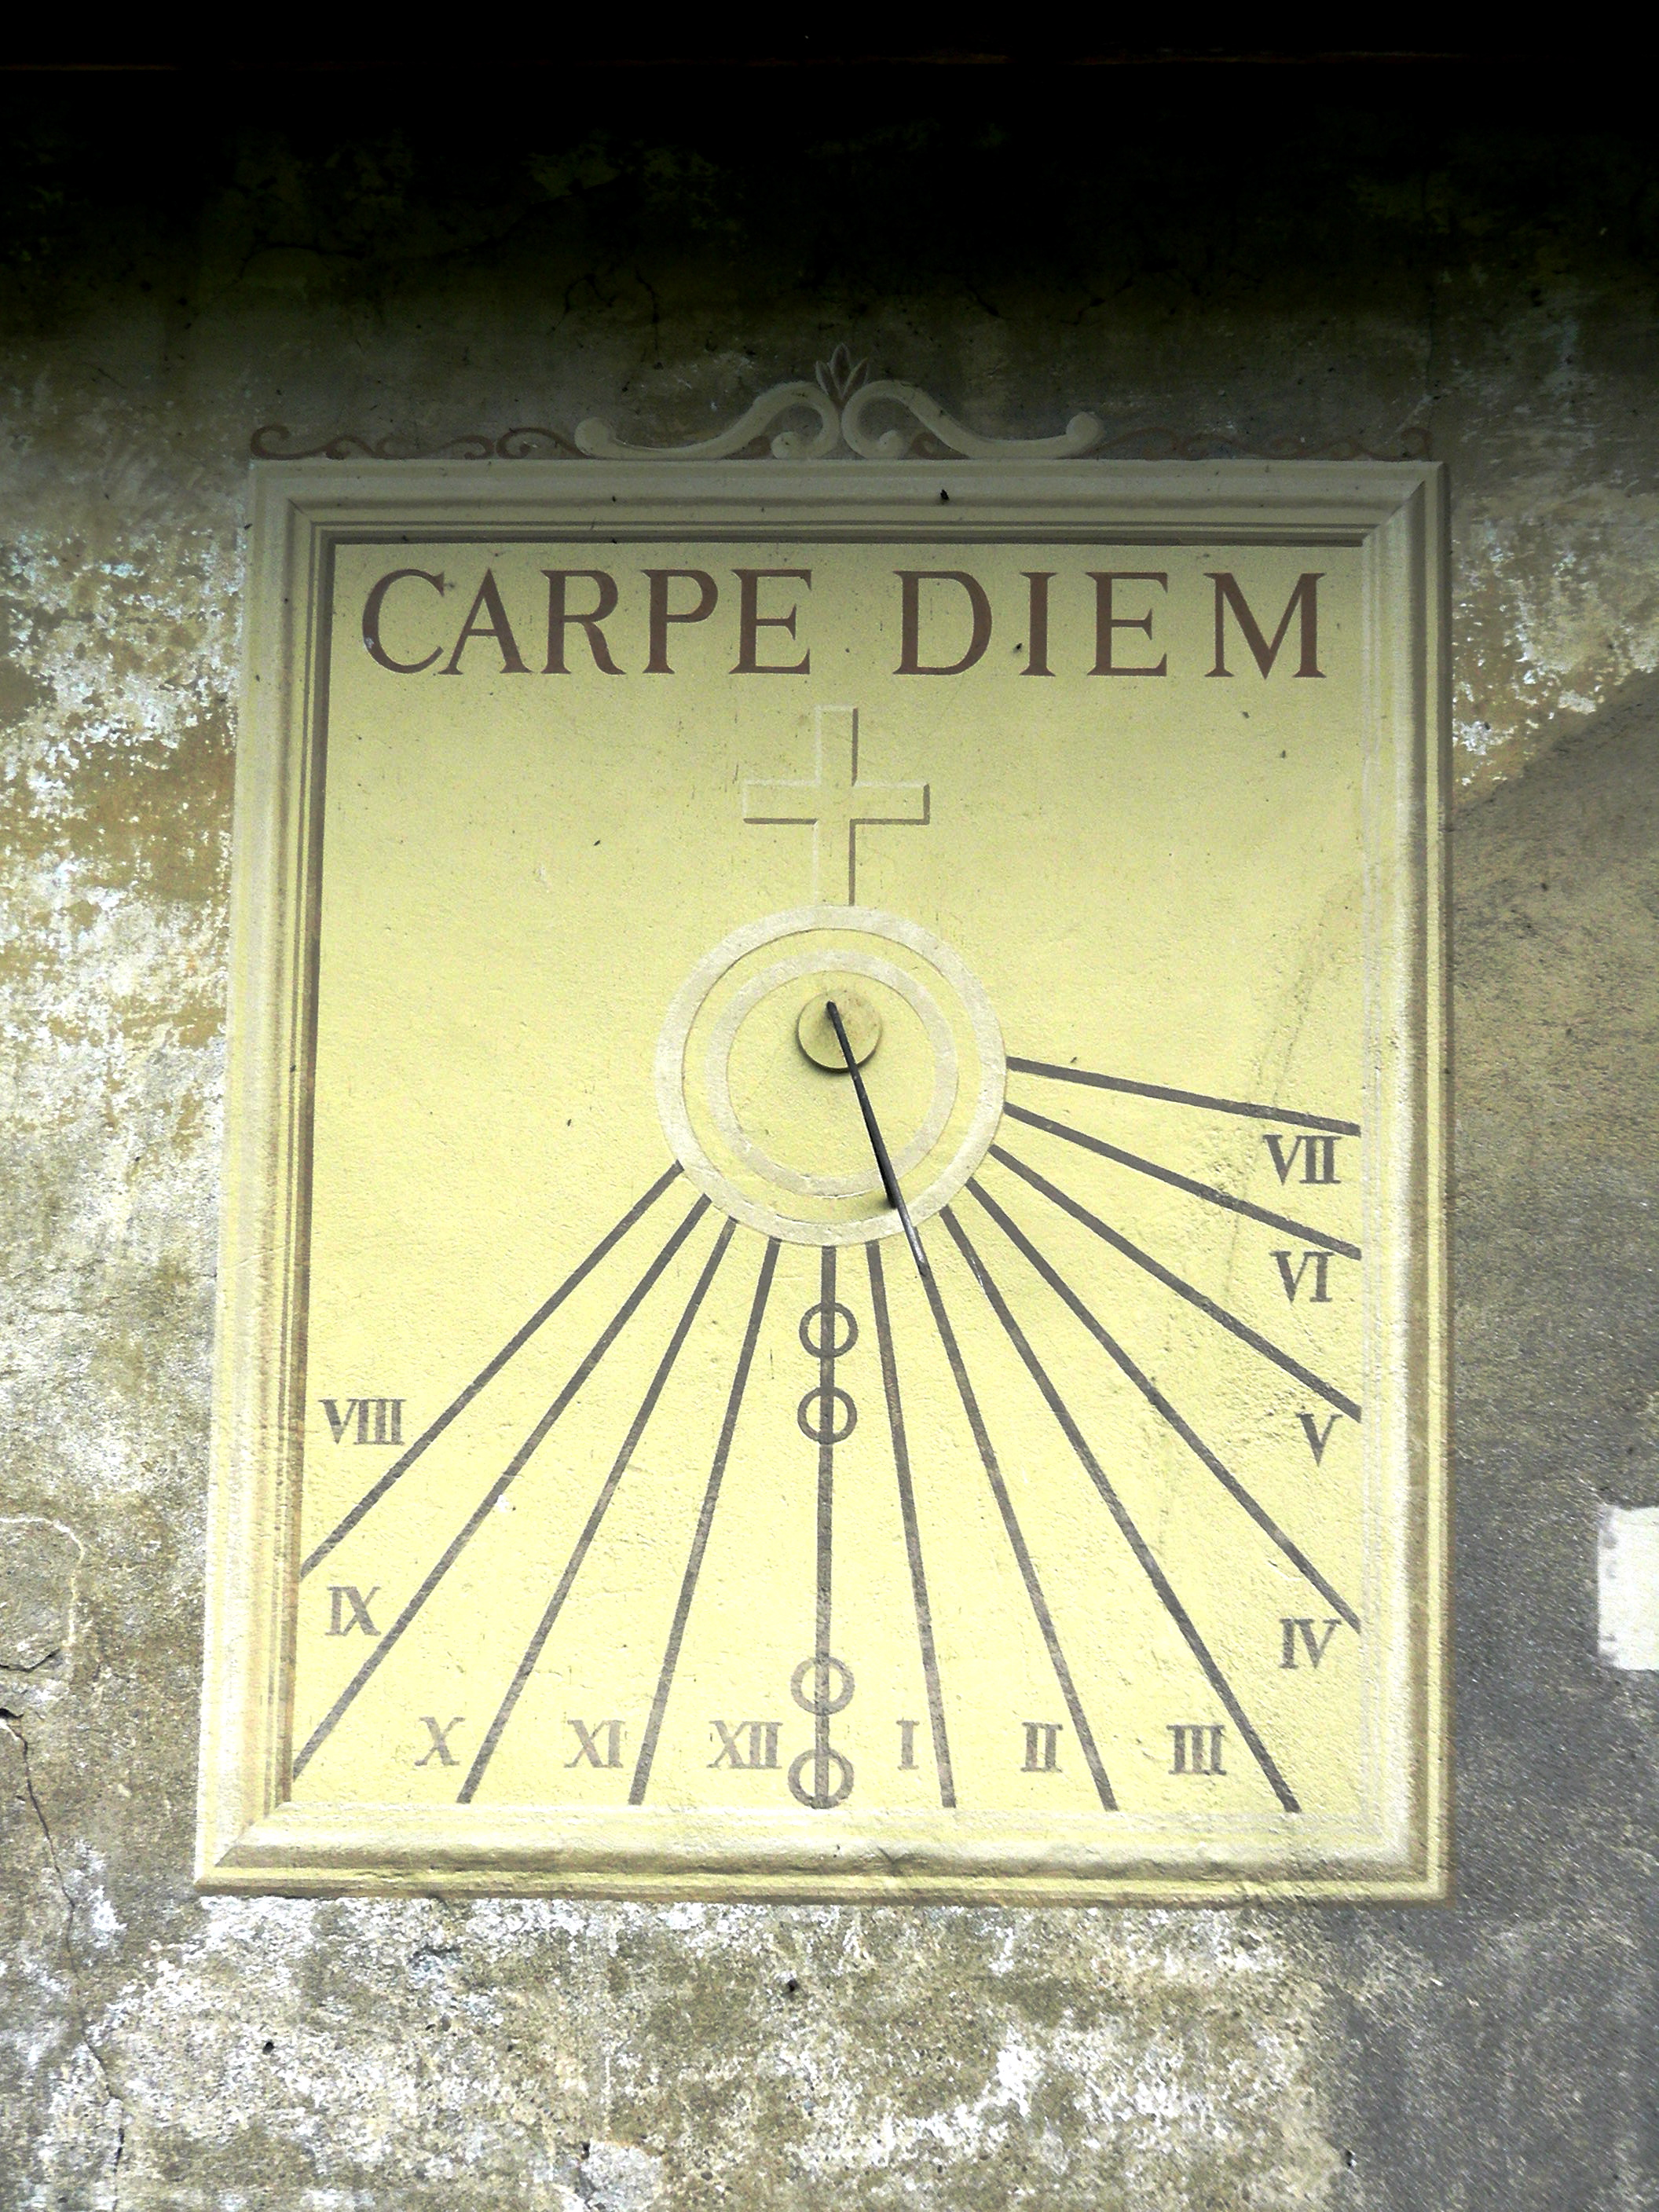 Carpe diem - Wikipedia